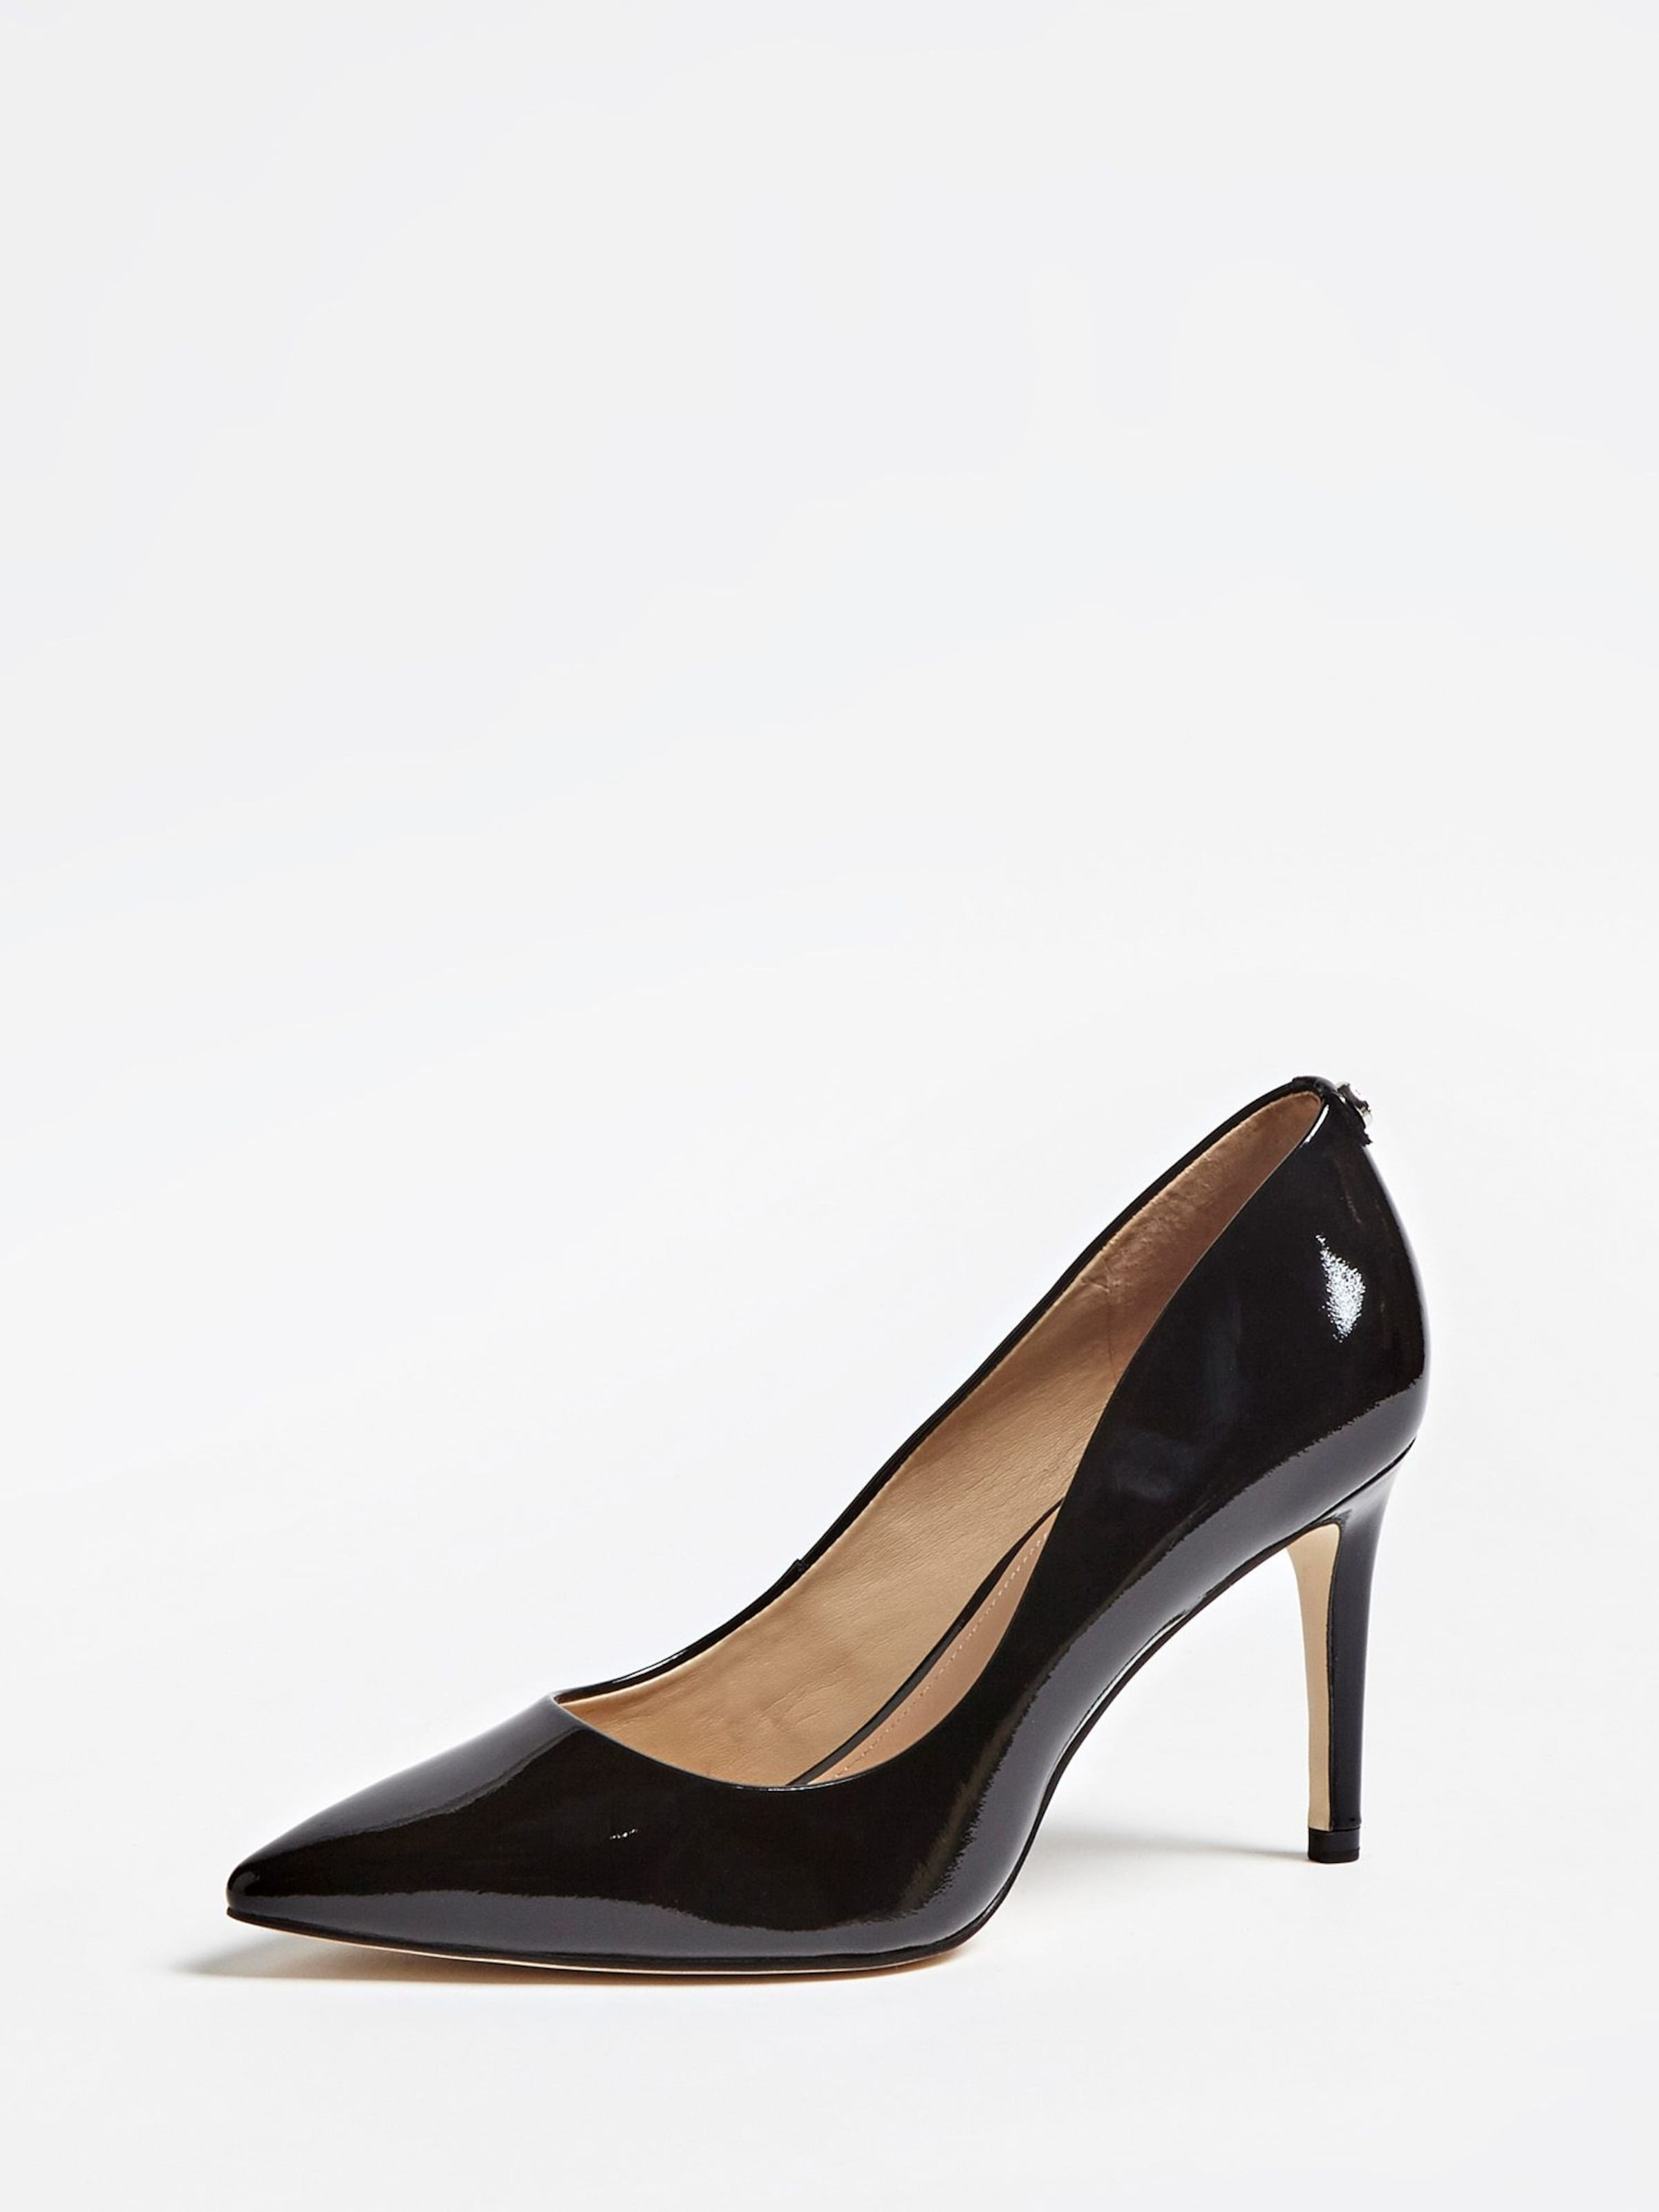 Guess Pumps Schwarz In Guess Pumps TJ5cFlKu13